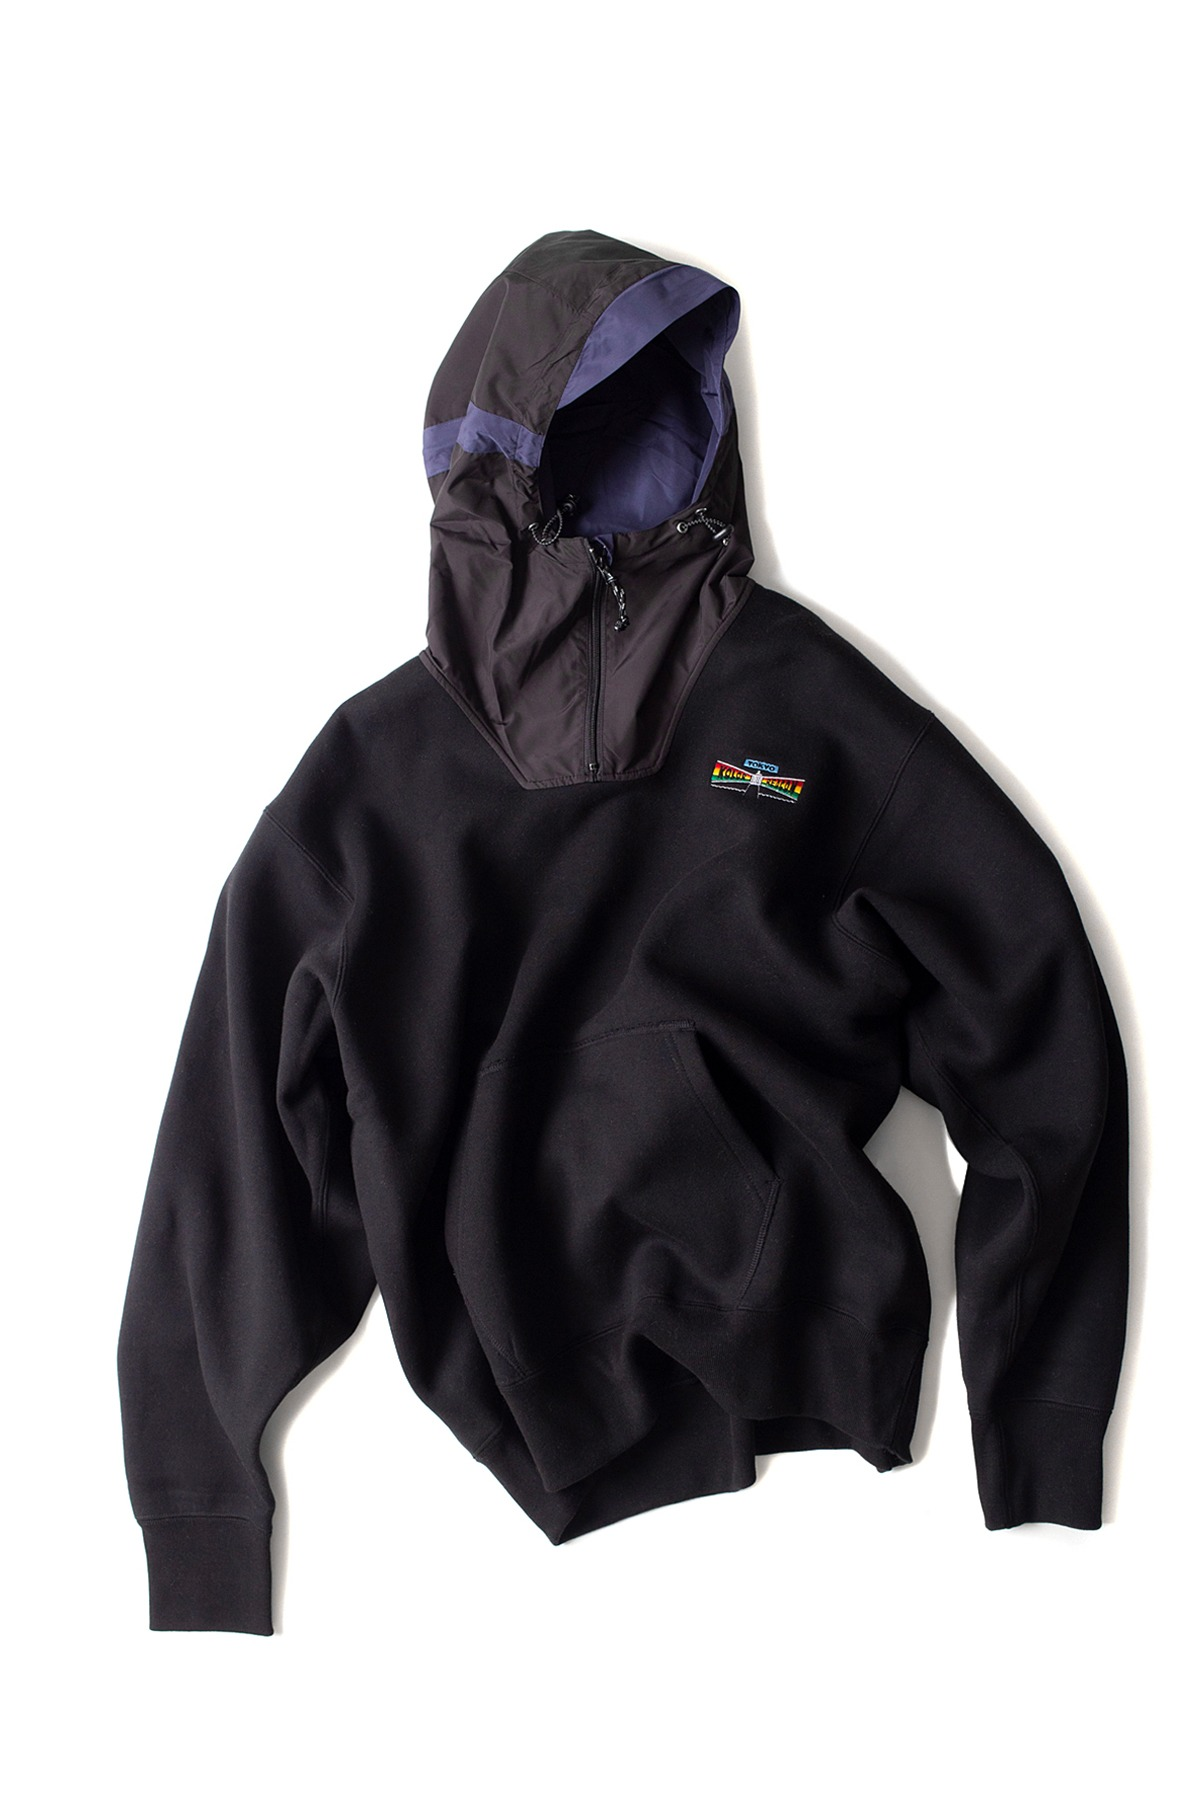 kolor / BEACON : T03231 Pullover (Black)